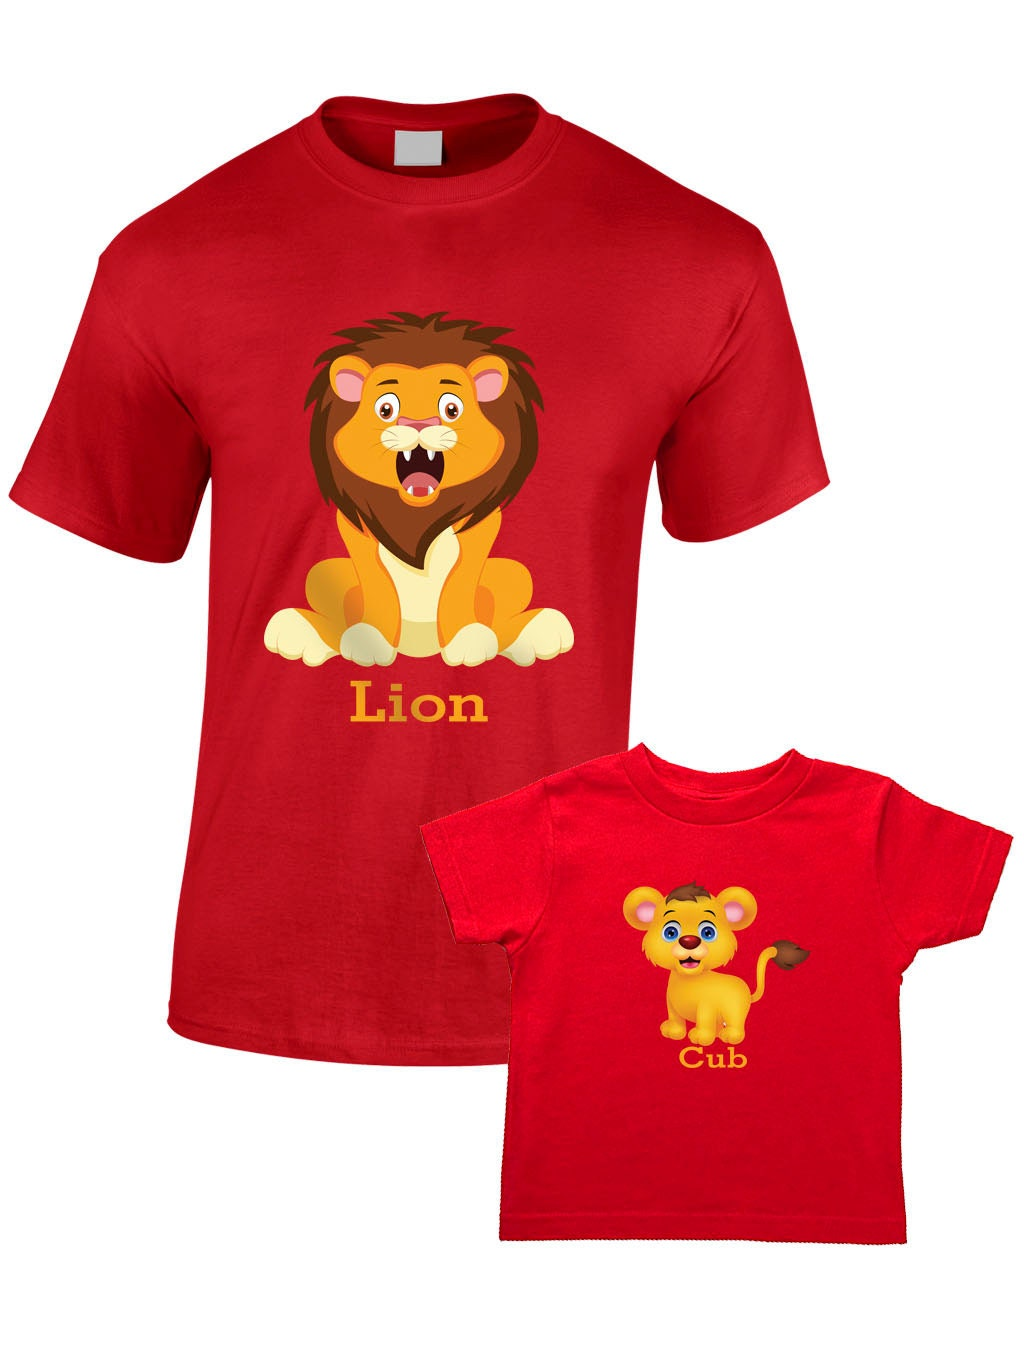 Lion And Cub TShirts  Matching Father Child Gift Set  Fathers Day Present Mum Son Daughter Dad